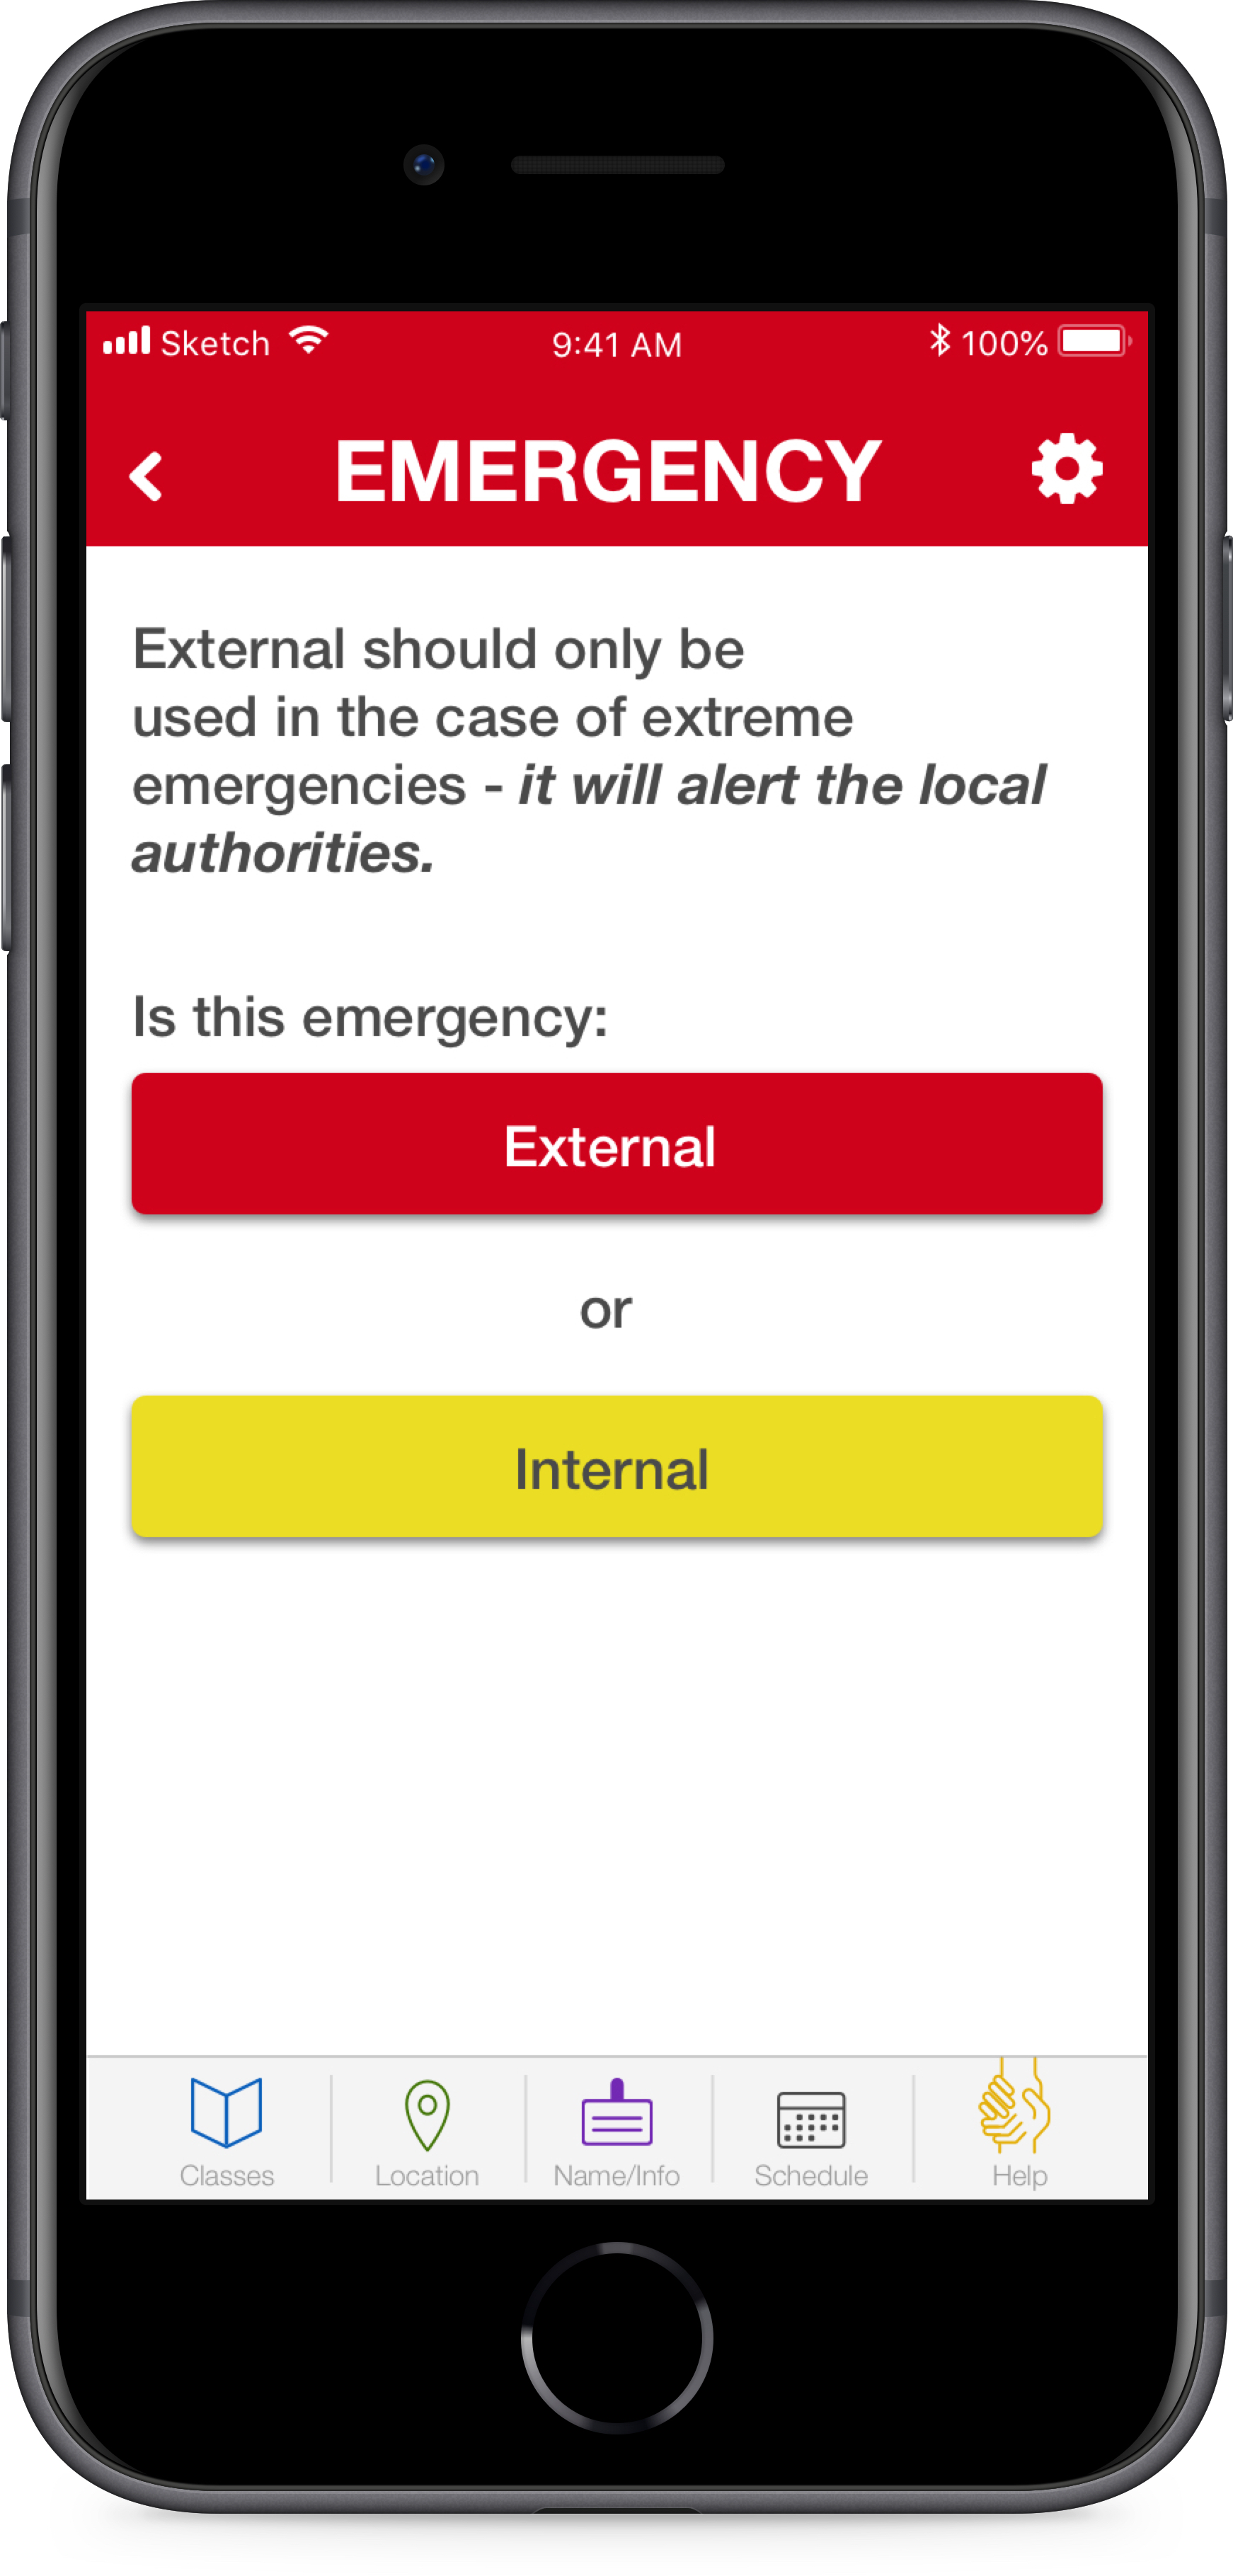 """Unfortunately,  school shootings in the USA are an epidemic . The emergency button would allow any user to alert authorities immediately. Additionally, it would alert all other users of the emergency immediately and silently, to avoid the PA system """"lockdown,"""" that's currently in place.  This has the potential to speed up response times and save lives ."""